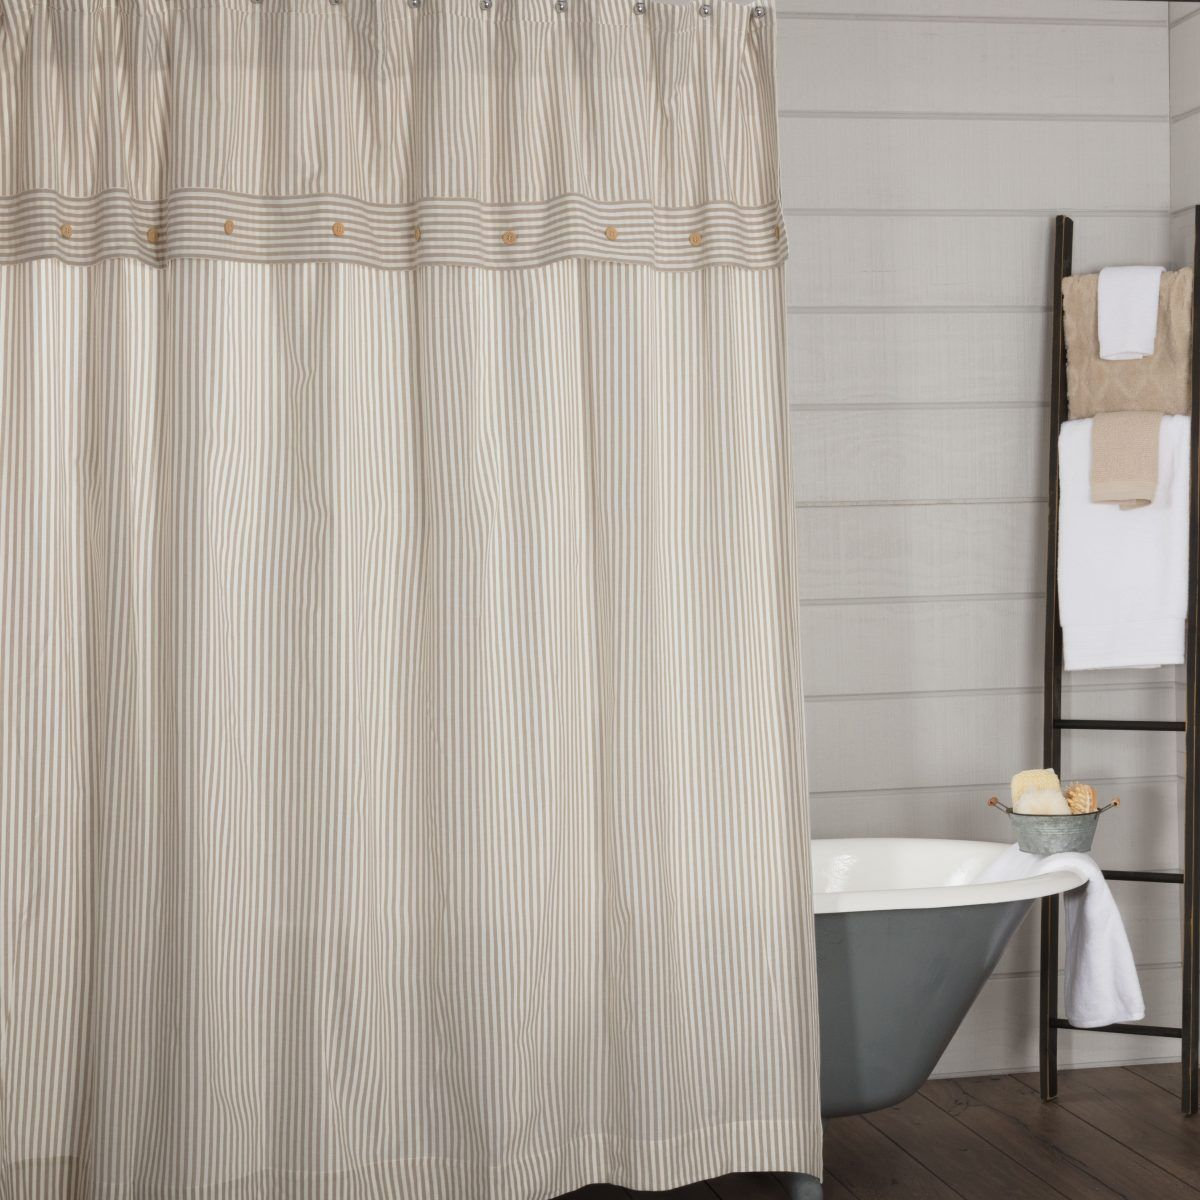 Farmhouse Ticking Taupe Shower Curtain Piper Classics Striped